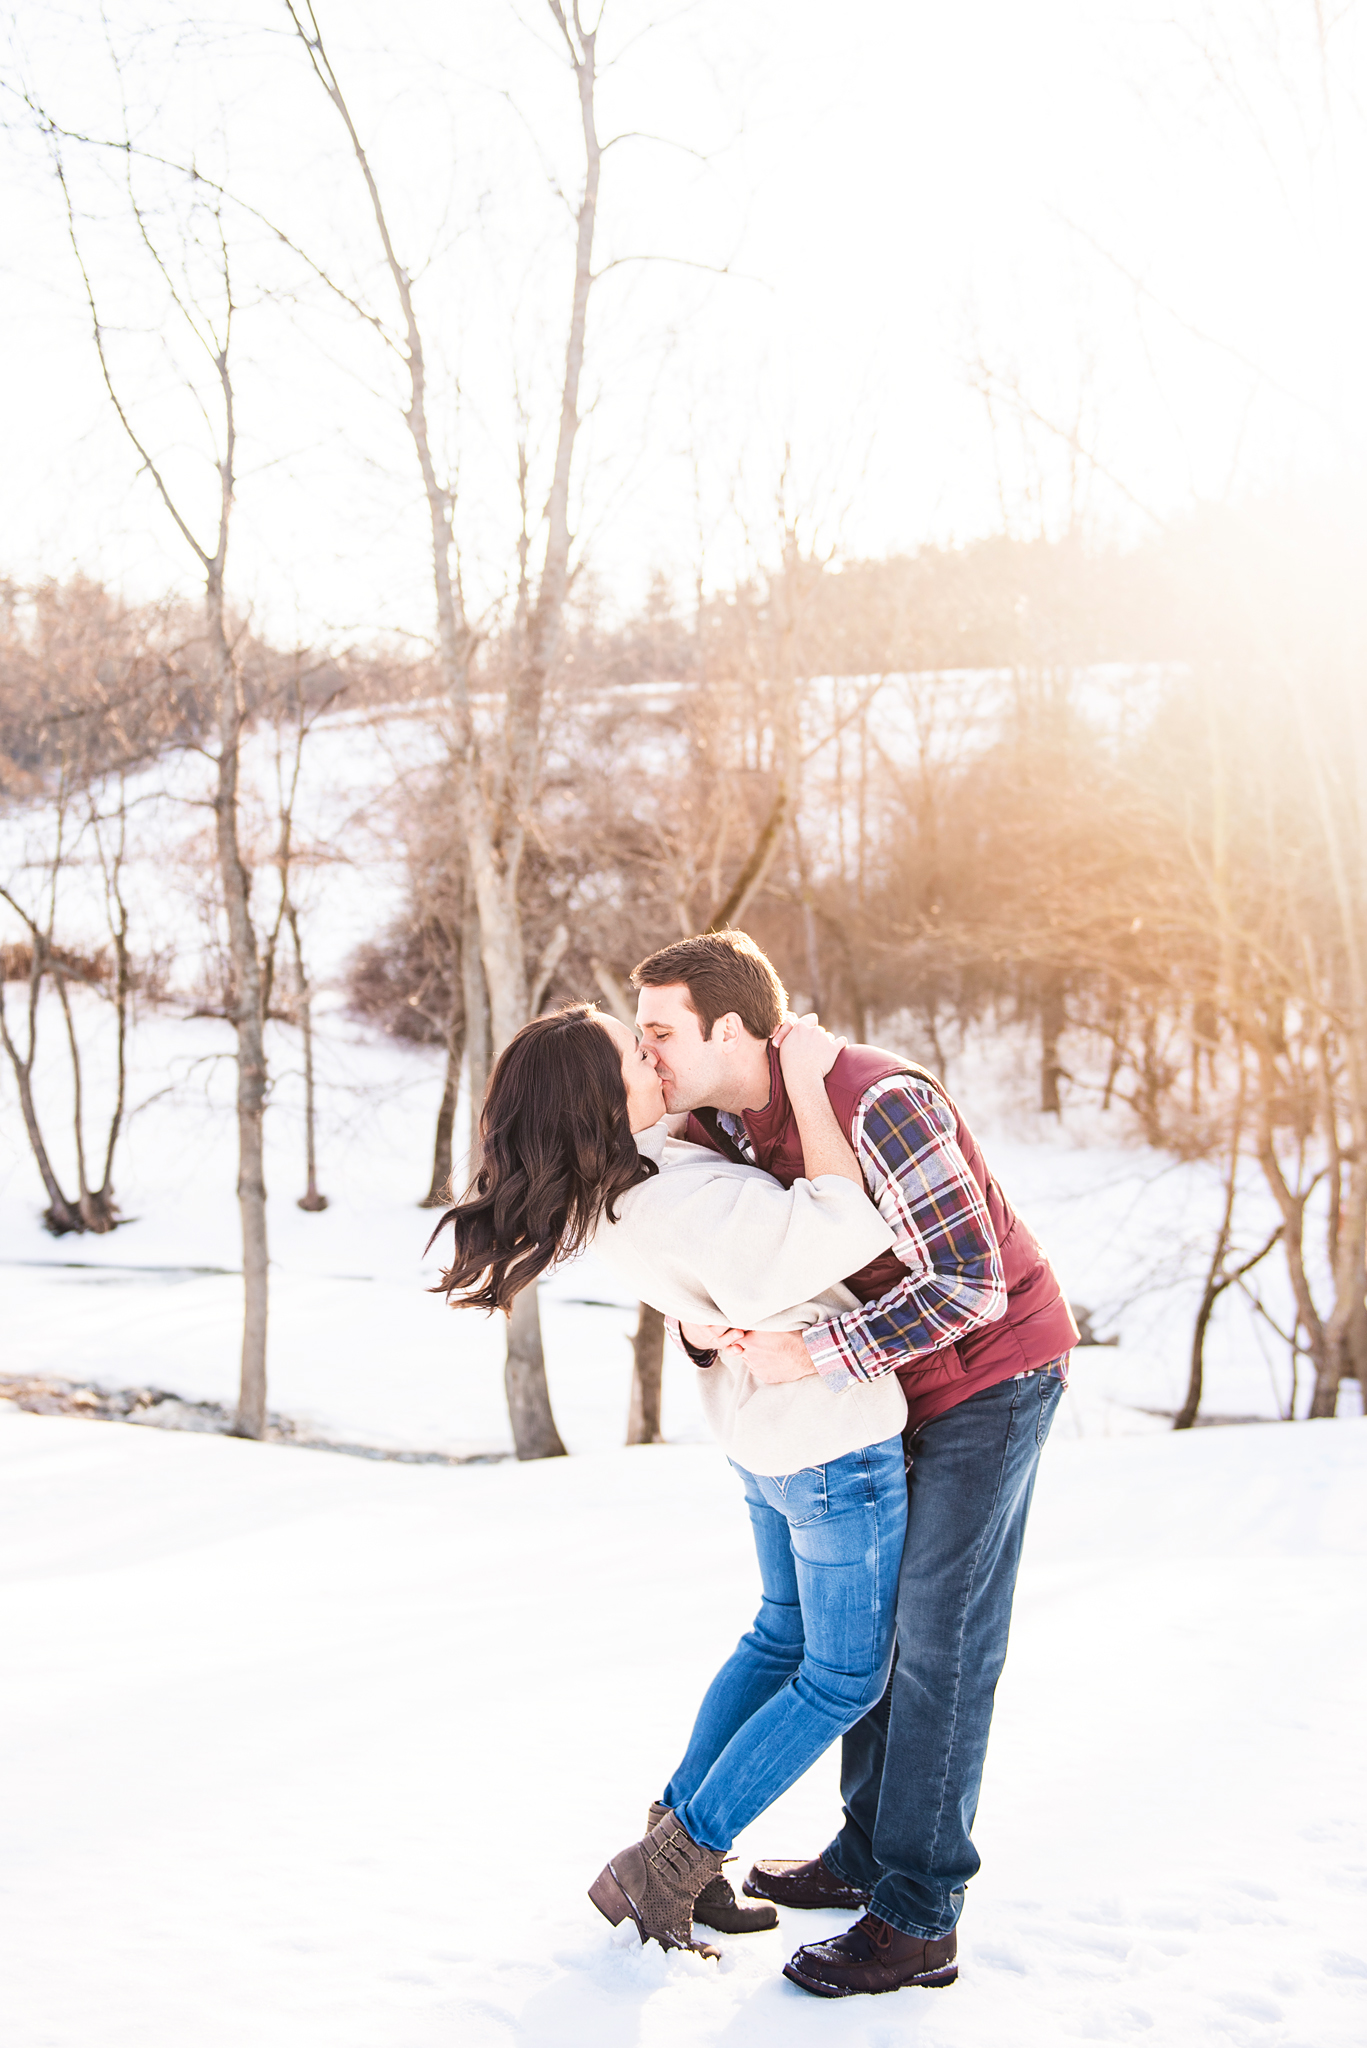 Fallbrook_Central_NY_Engagement_Session_JILL_STUDIO_Rochester_NY_Photographer_DSC_4681.jpg